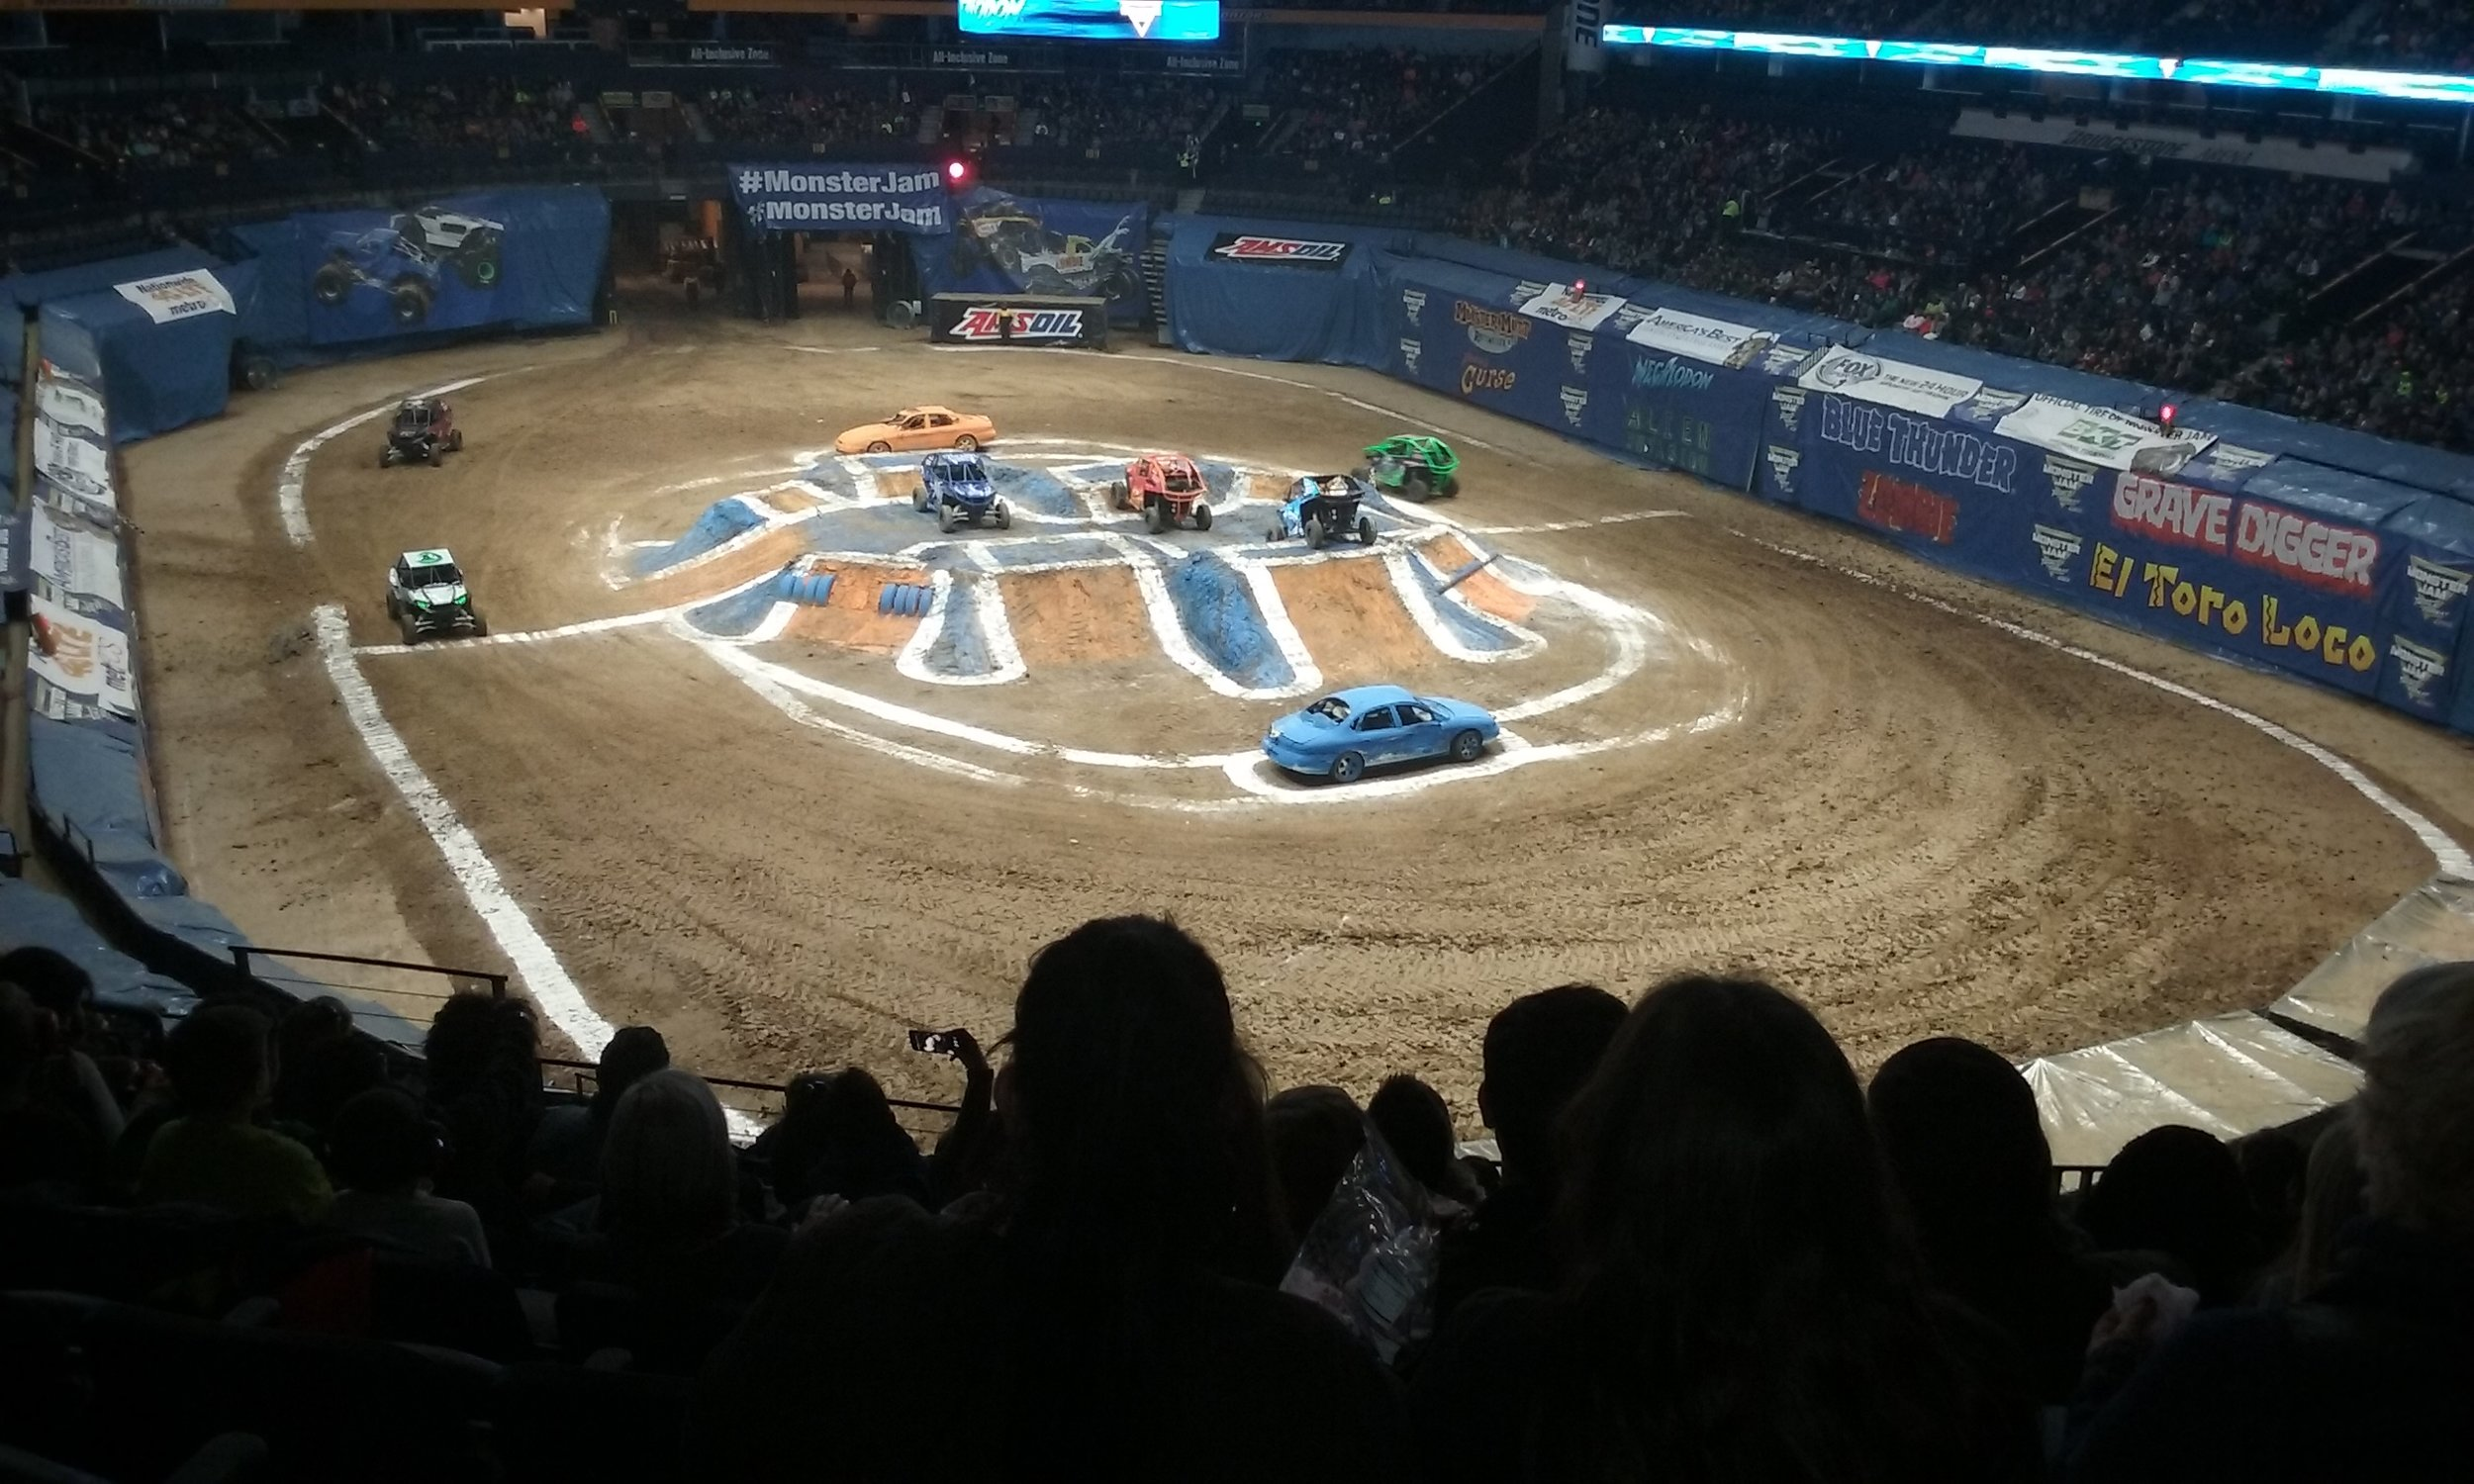 They not only race monster trucks, but they also race speedsters.